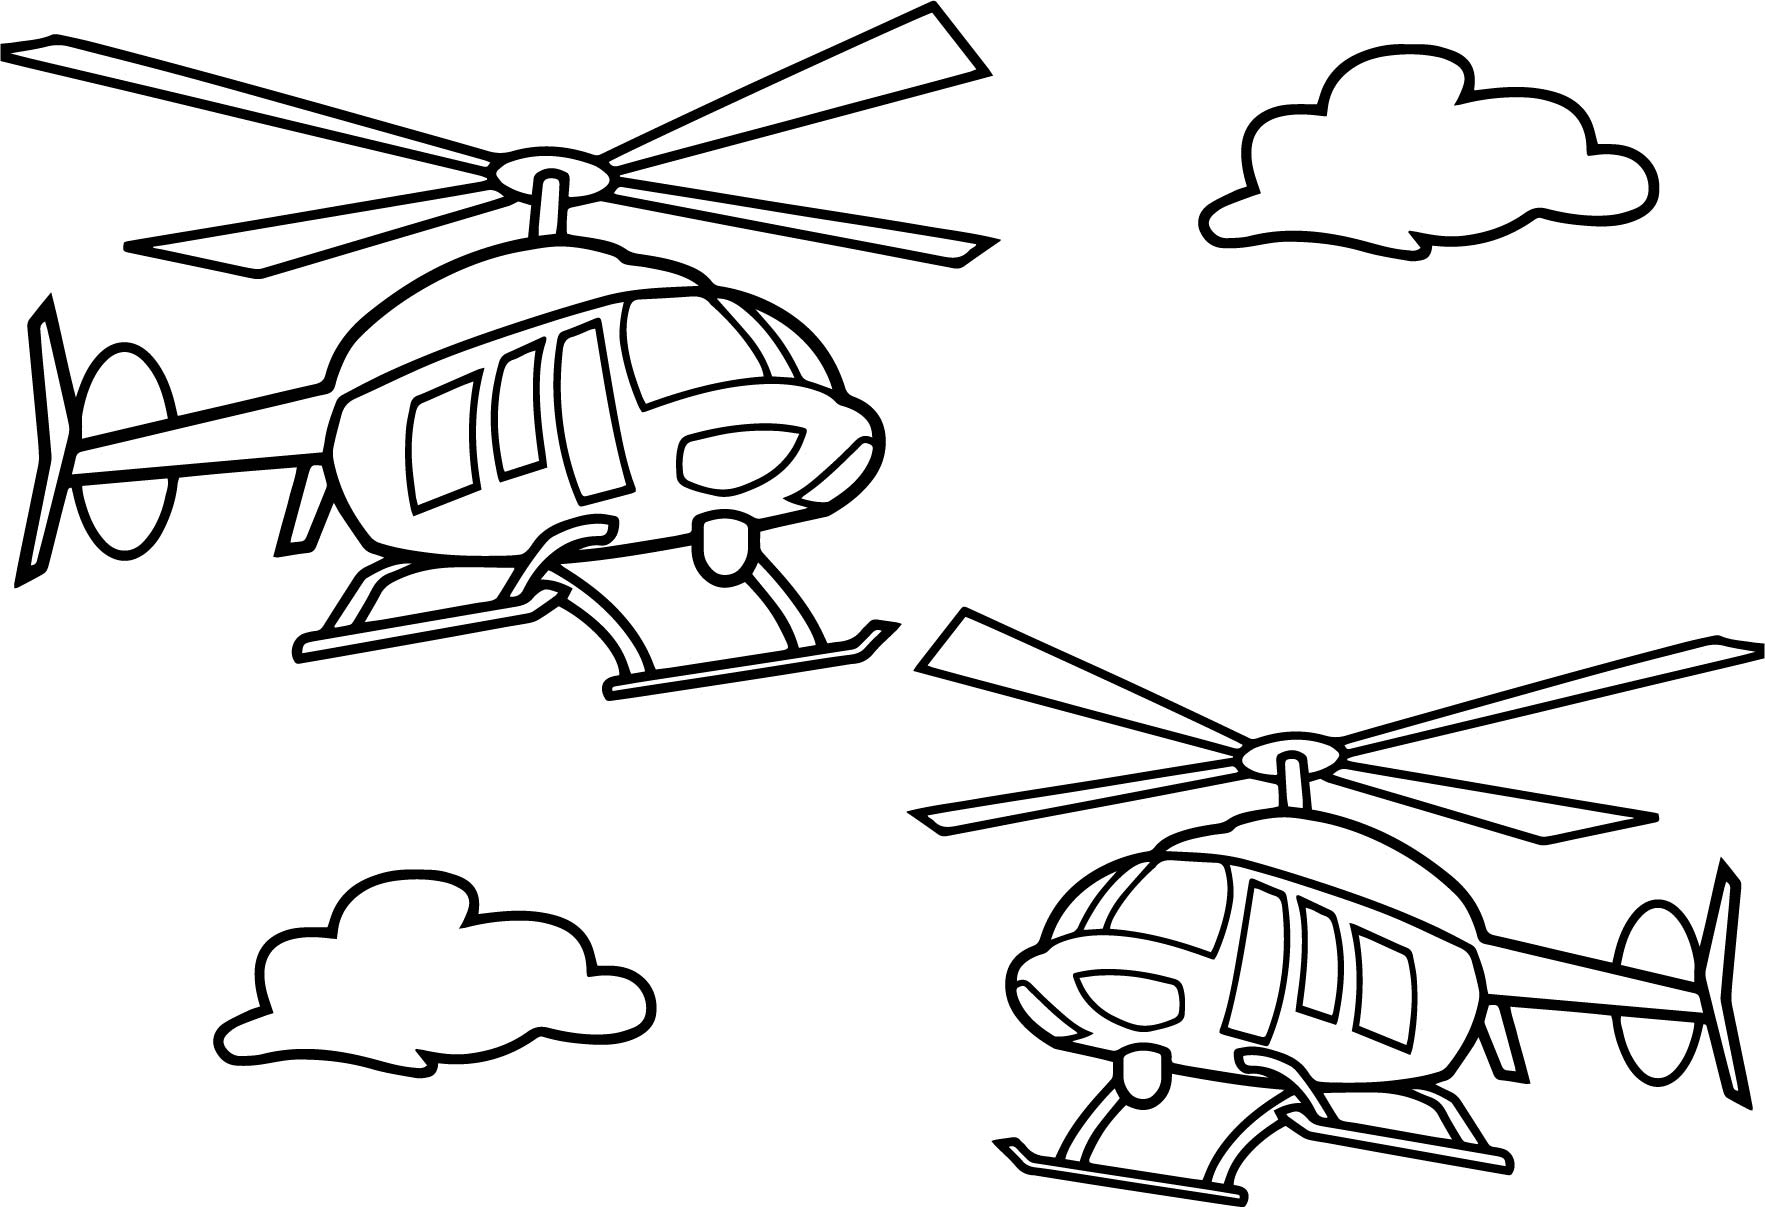 1765x1207 Fresh Helicopters Coloring Pages Gallery Printable Sheet Fair